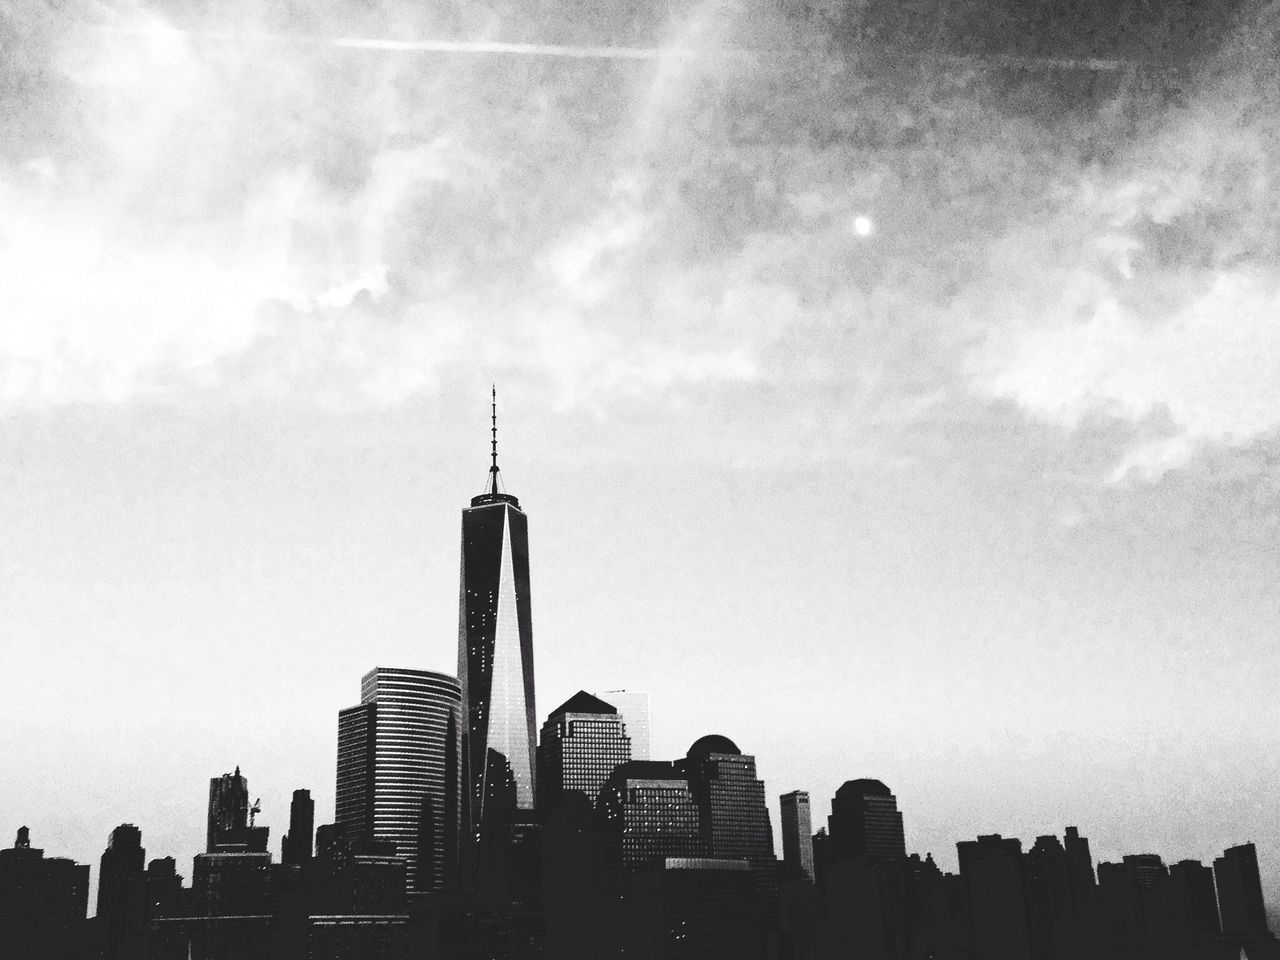 Elegance Everywhere Silhouette The Great Outdoors - 2015 EyeEm Awards Enjoying The View NYC Photography The Best Of New York Buildings ProCamera - Shots Of The Year 2014 Skyline The Architect - 2015 EyeEm Awards